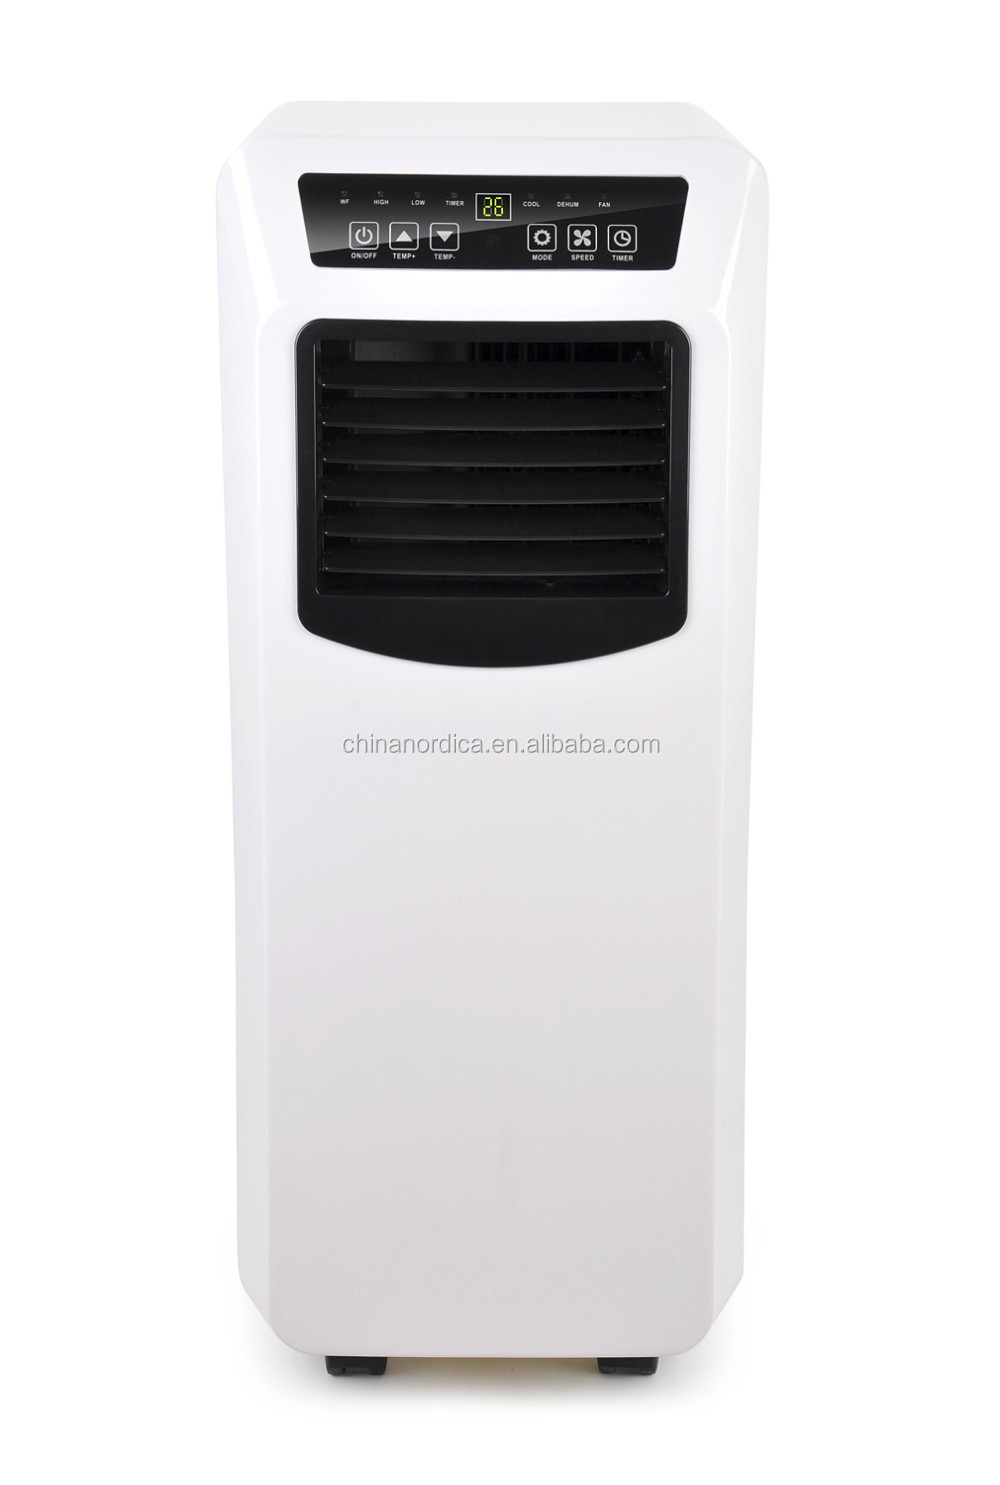 4 in 1 residential portable air conditioner 7000 14000 btu buy portable air conditioner air. Black Bedroom Furniture Sets. Home Design Ideas